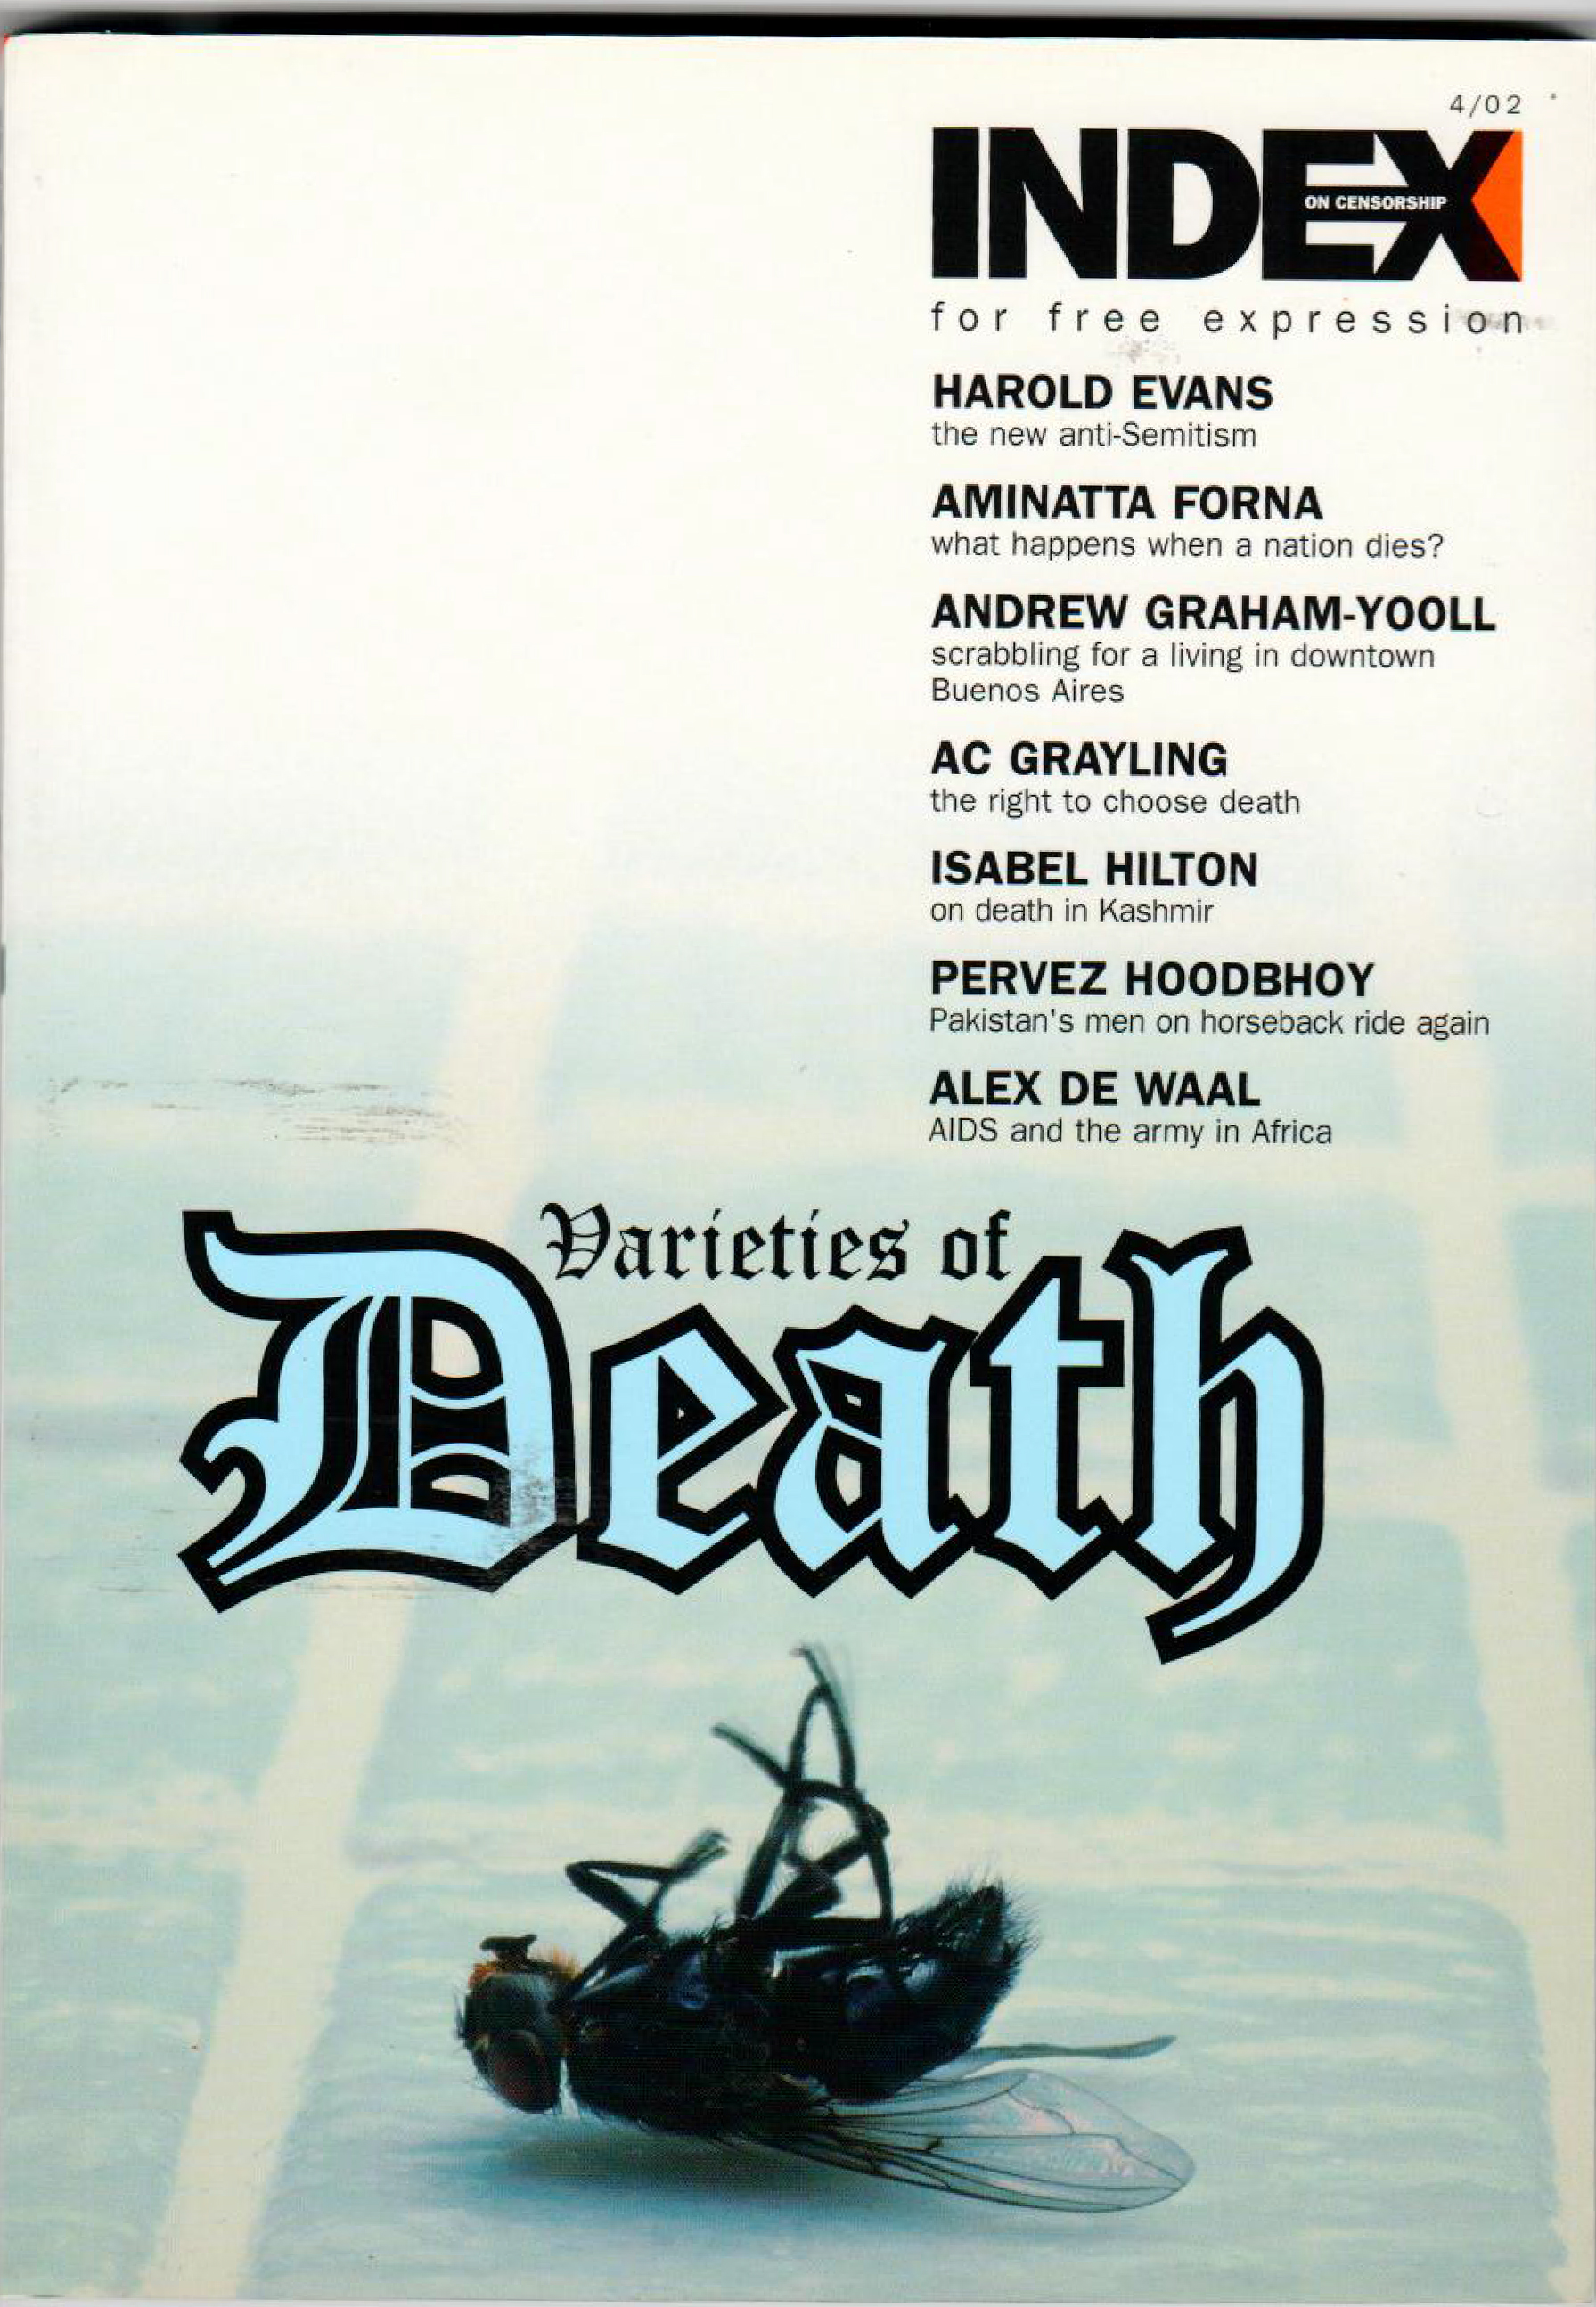 Varieties of death, the winter 2002 issue of Index on Censorship magazine.